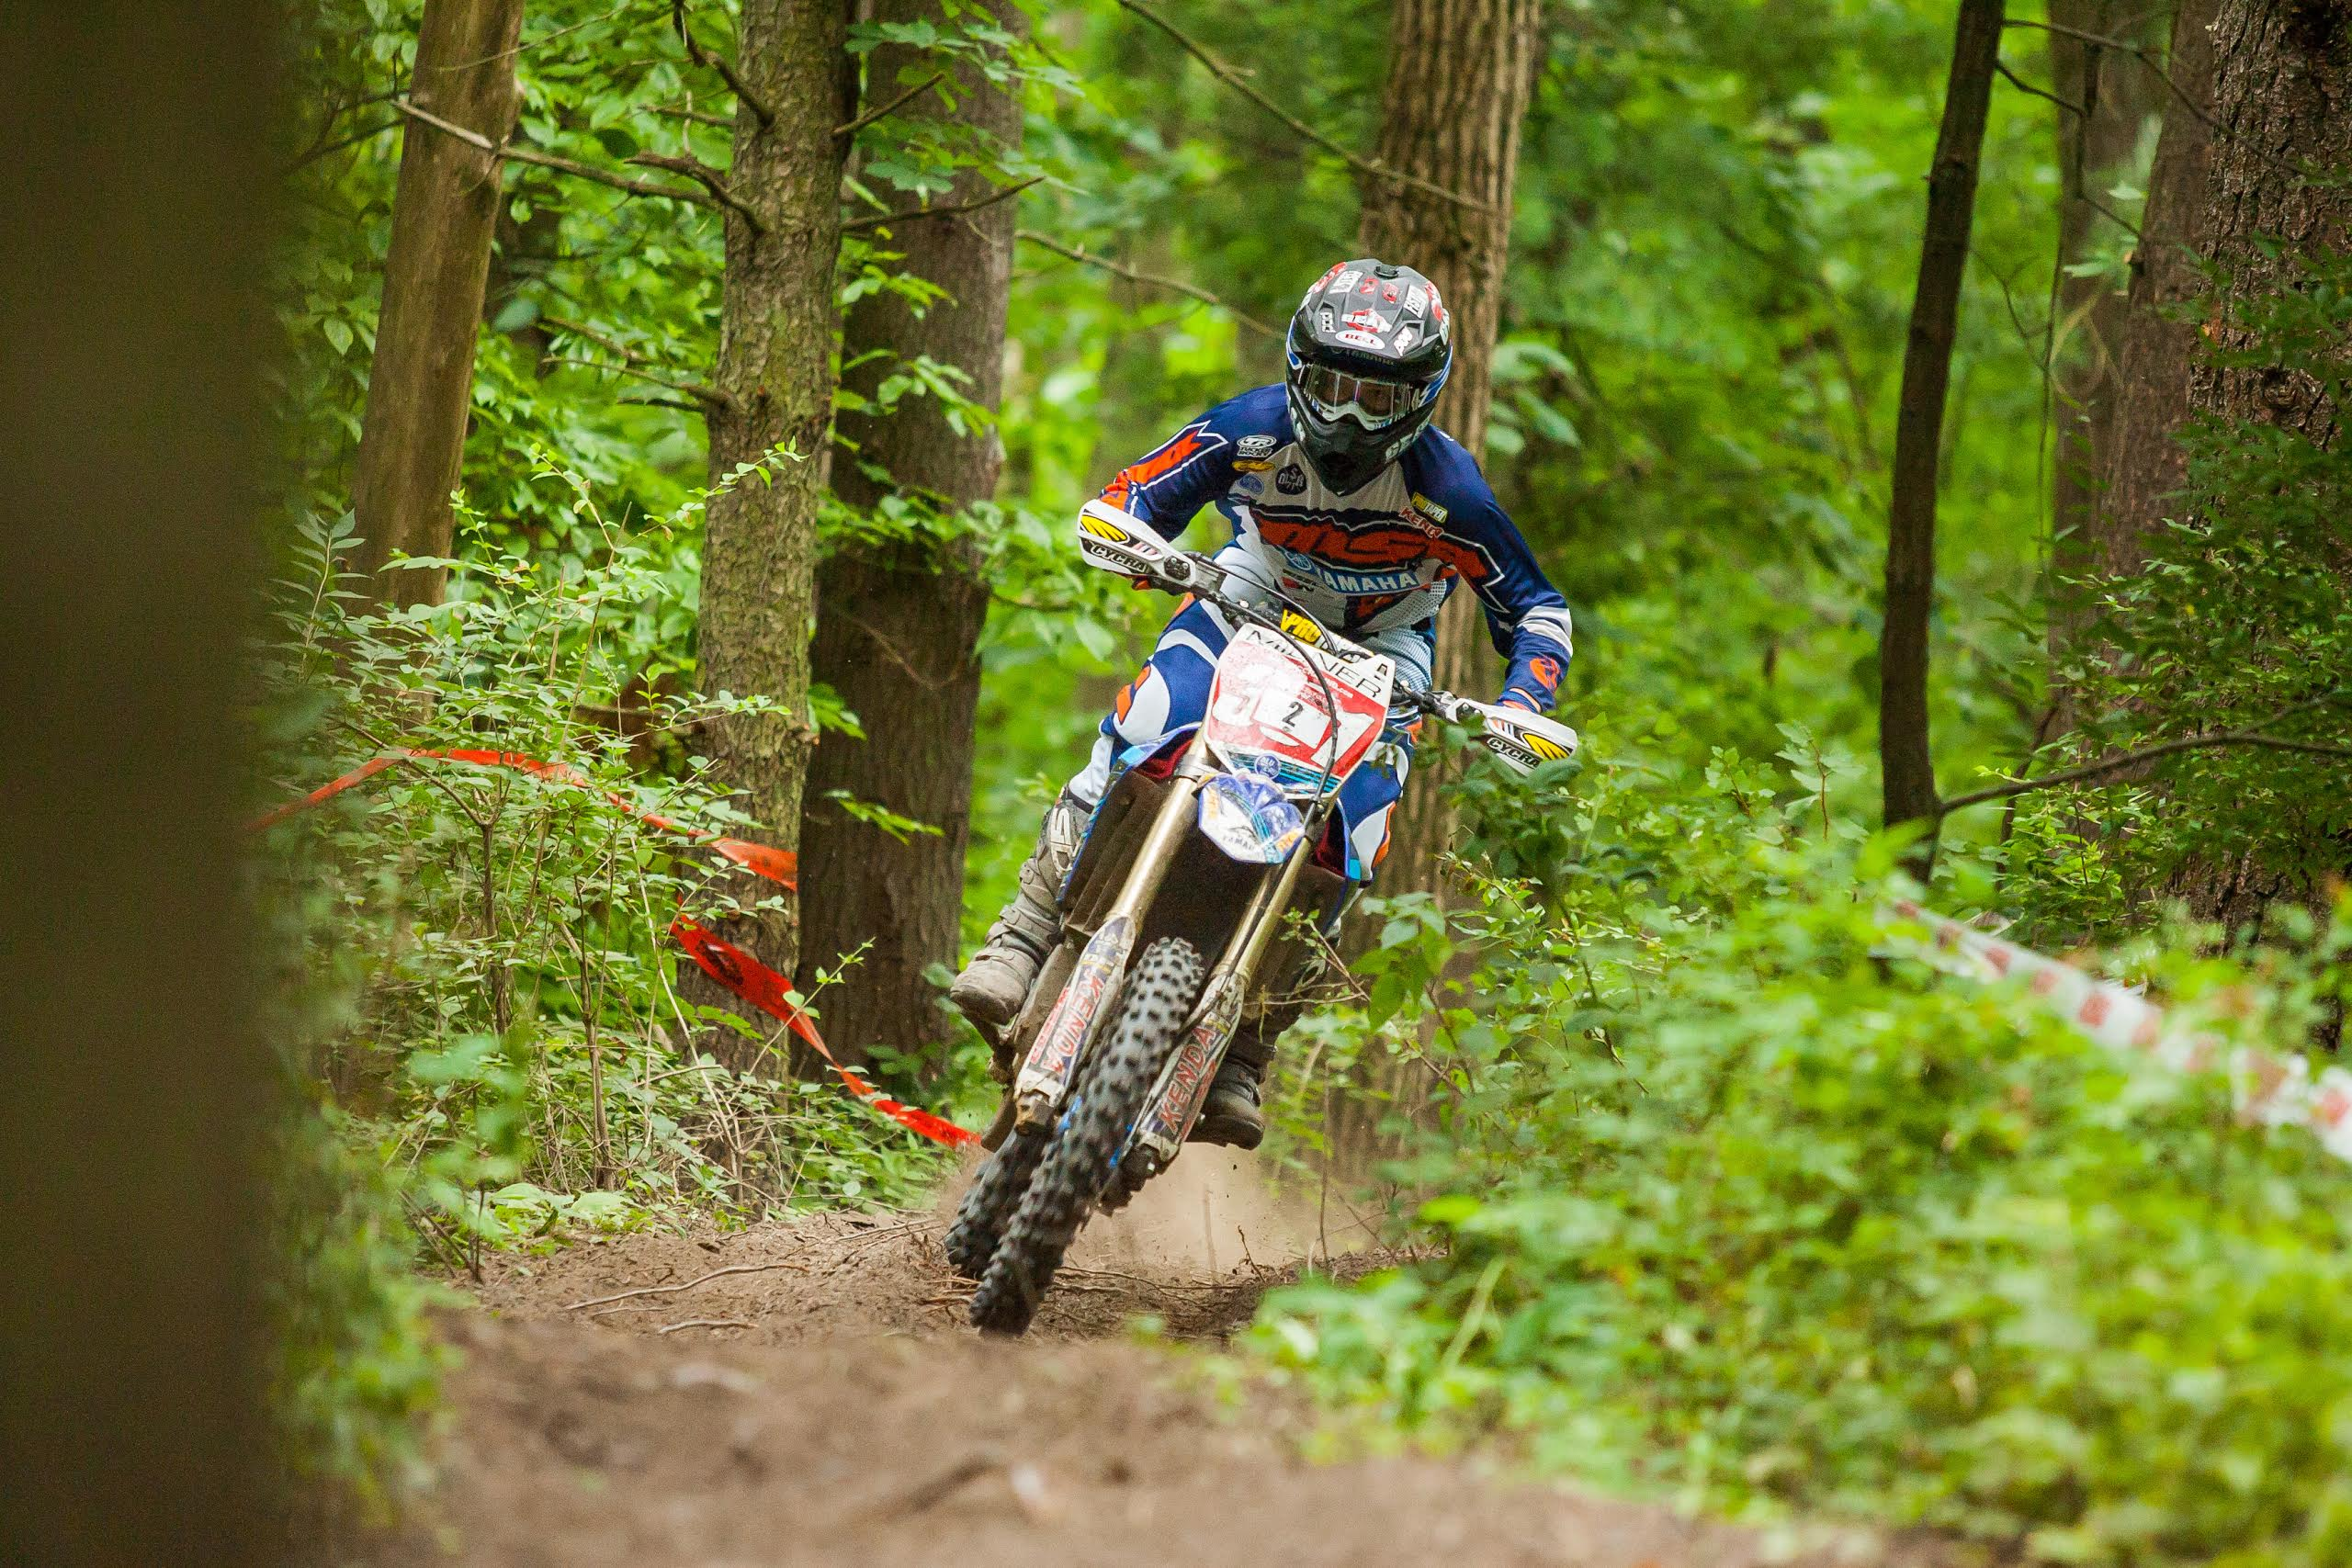 Daniel Milner Ends Kailub Russell's Sprint Enduro Win Streak with Victory at Round 3